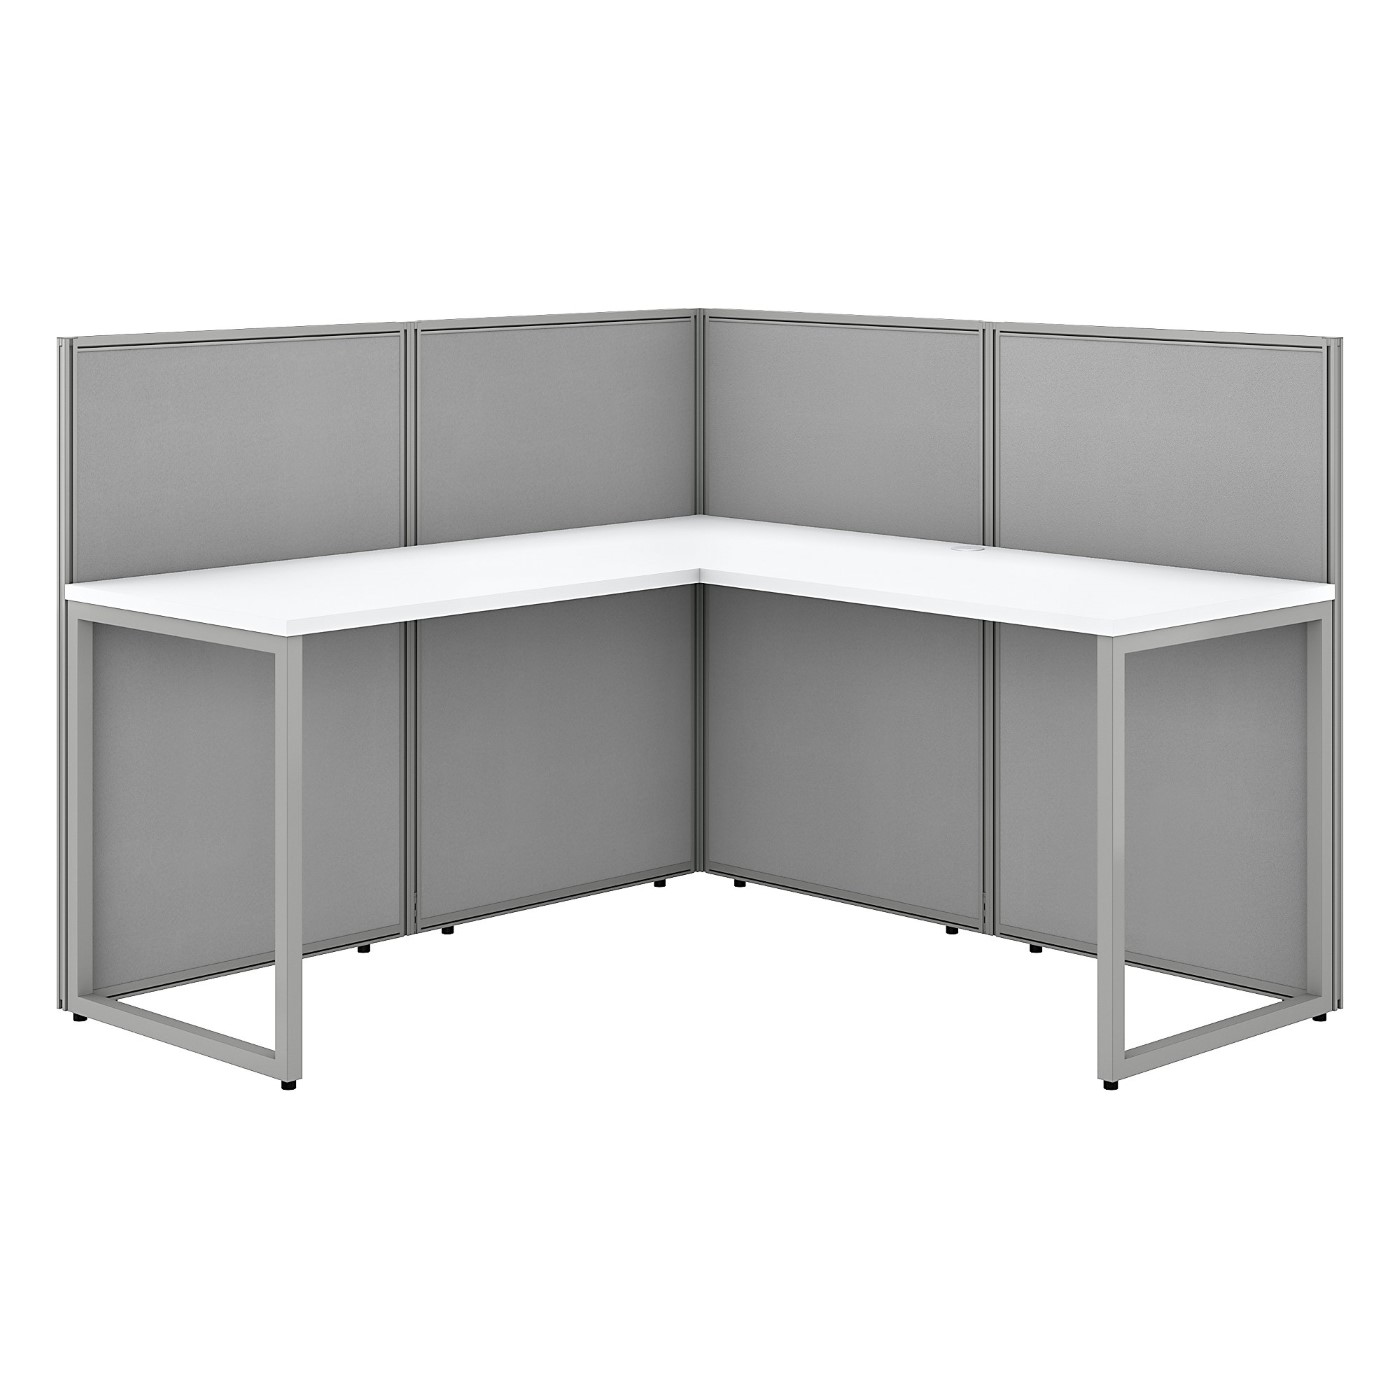 BUSH BUSINESS FURNITURE EASY OFFICE 60W L SHAPED CUBICLE DESK WORKSTATION WITH 45H PANELS. FREE SHIPPING SALE DEDUCT 10% MORE ENTER '10percent' IN COUPON CODE BOX WHILE CHECKING OUT. ENDS 5-31-20.